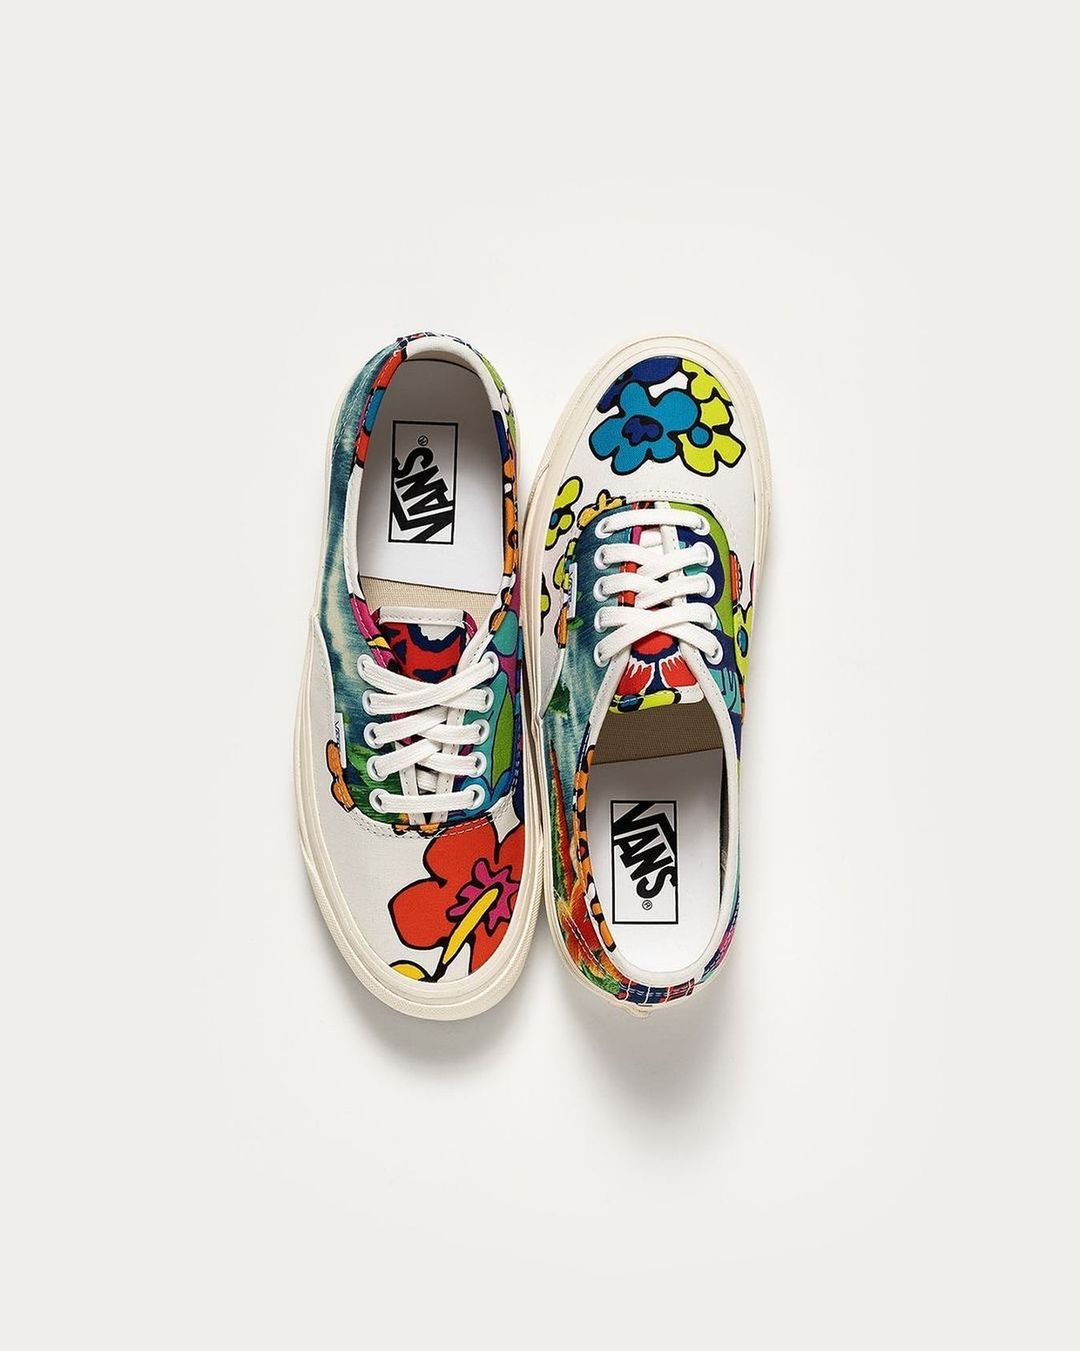 The Vans x Hoffman California Fabrics Authentic 44 DX is available on Zen!